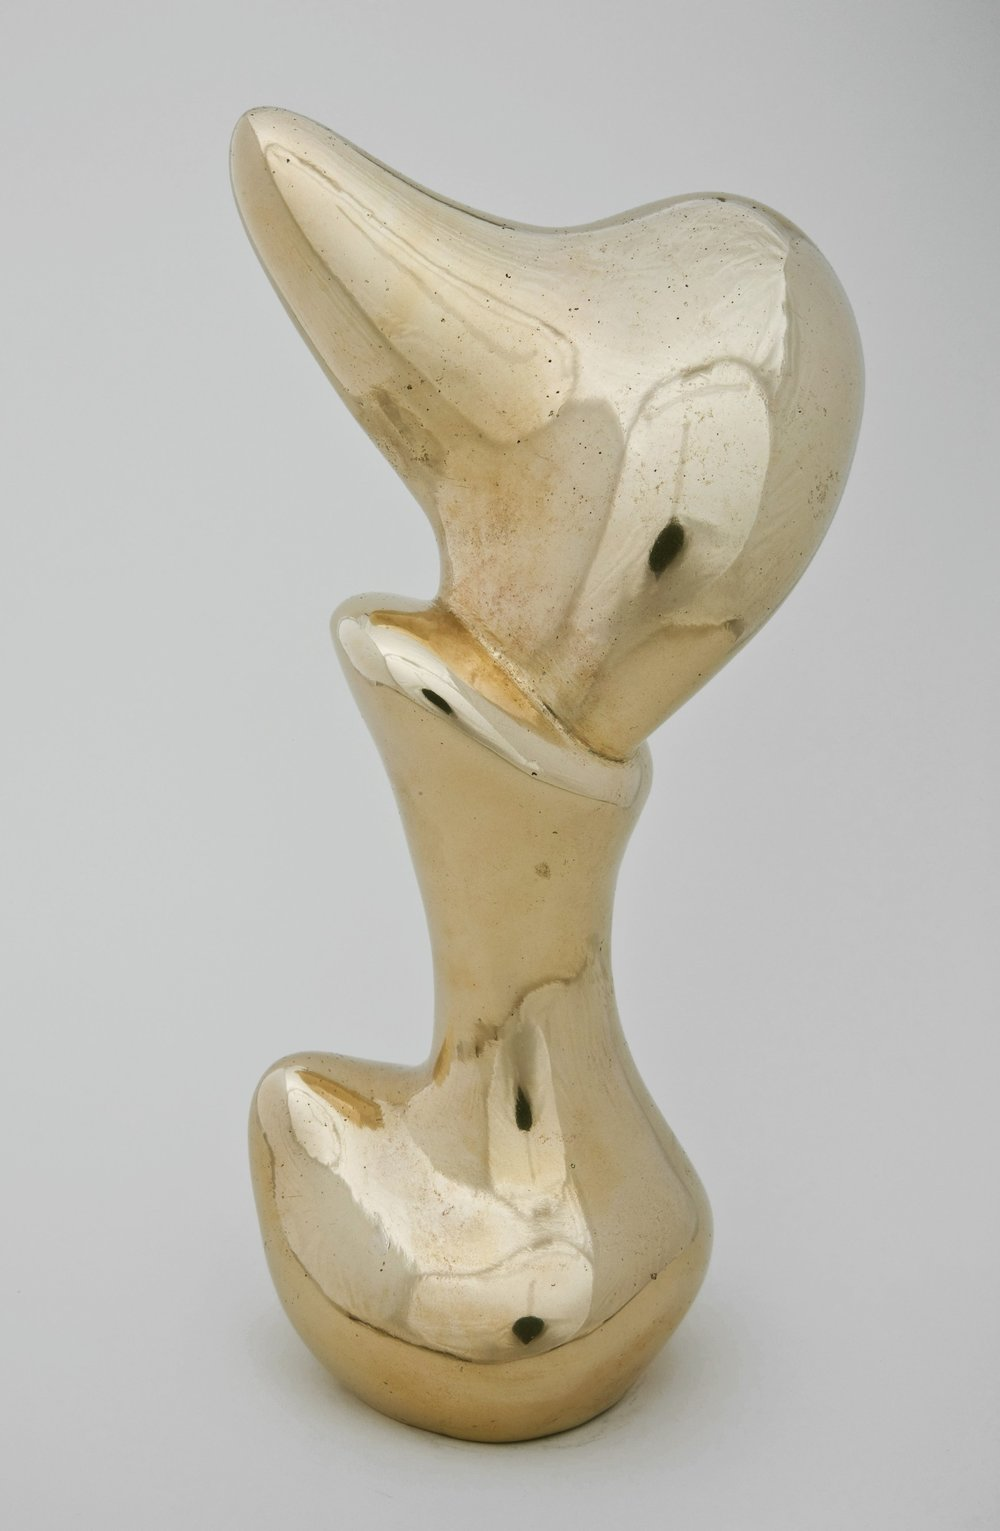 Jean Arp,  Bust of Gnome (Buste de Lutin),  1949, bronze, 12 x 4 1/2 x 4 inches (30.5 x 11.4 x 10.2 cm).  https://www.guggenheim.org/artwork/14000